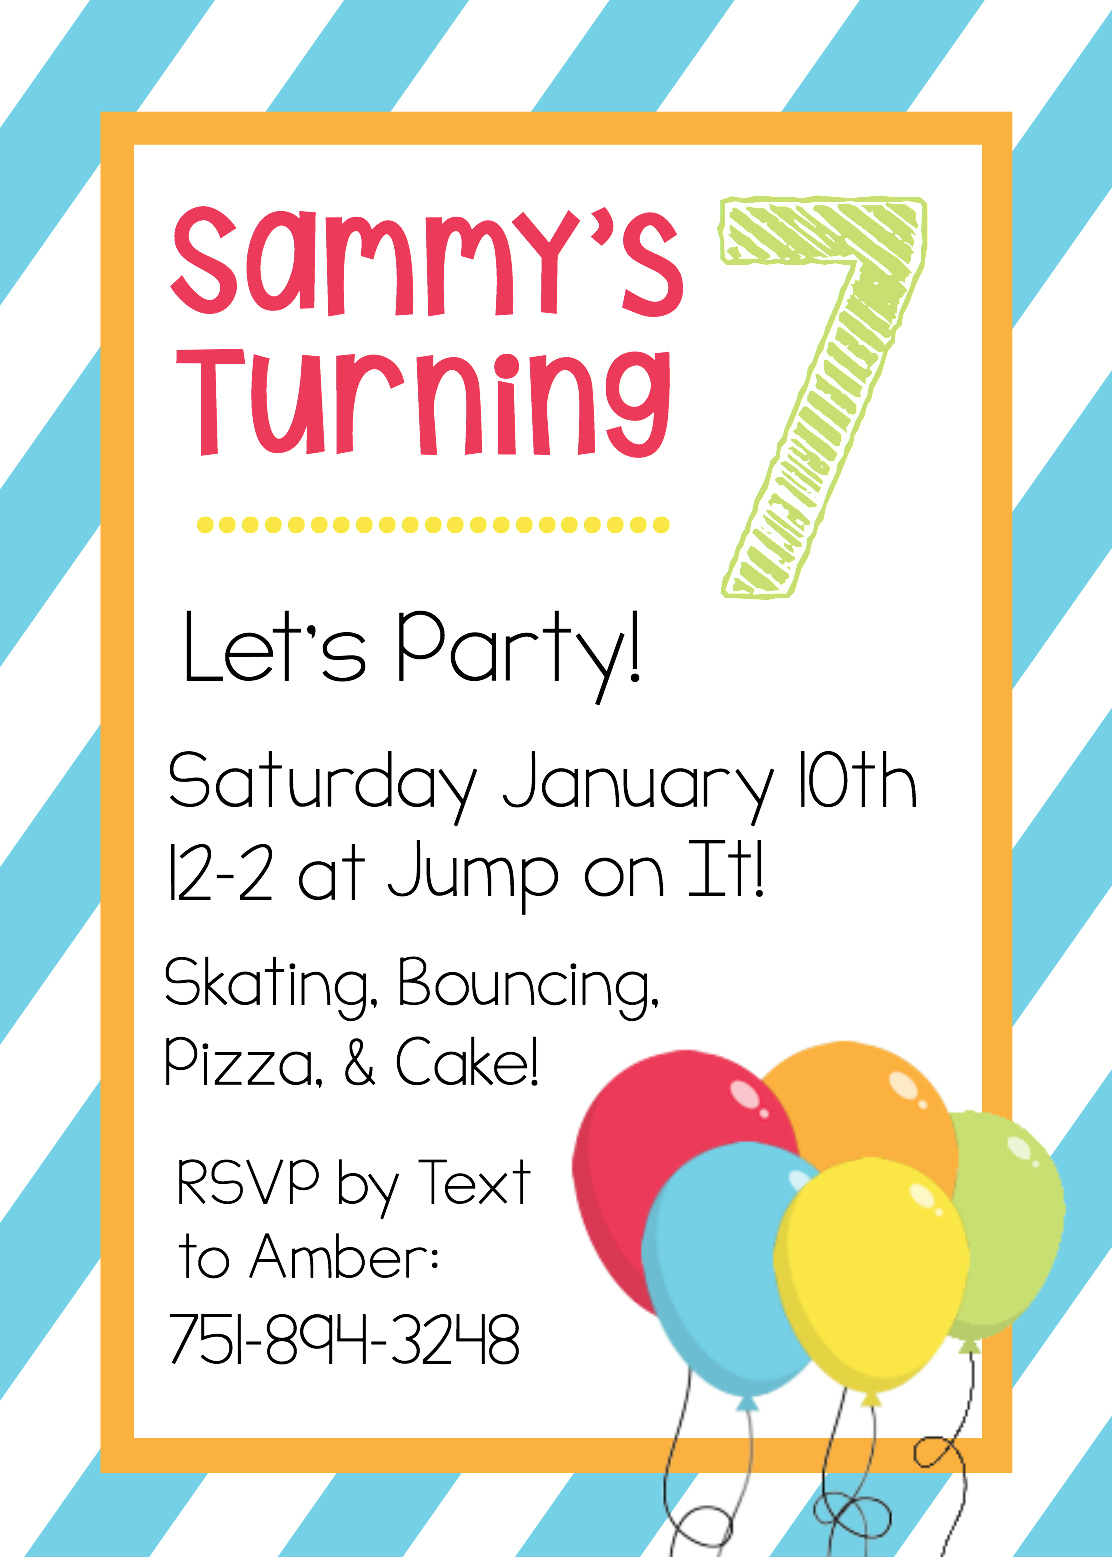 Printable Birthday Invitation Templates - Party invitation template: free printable birthday party invitation templates